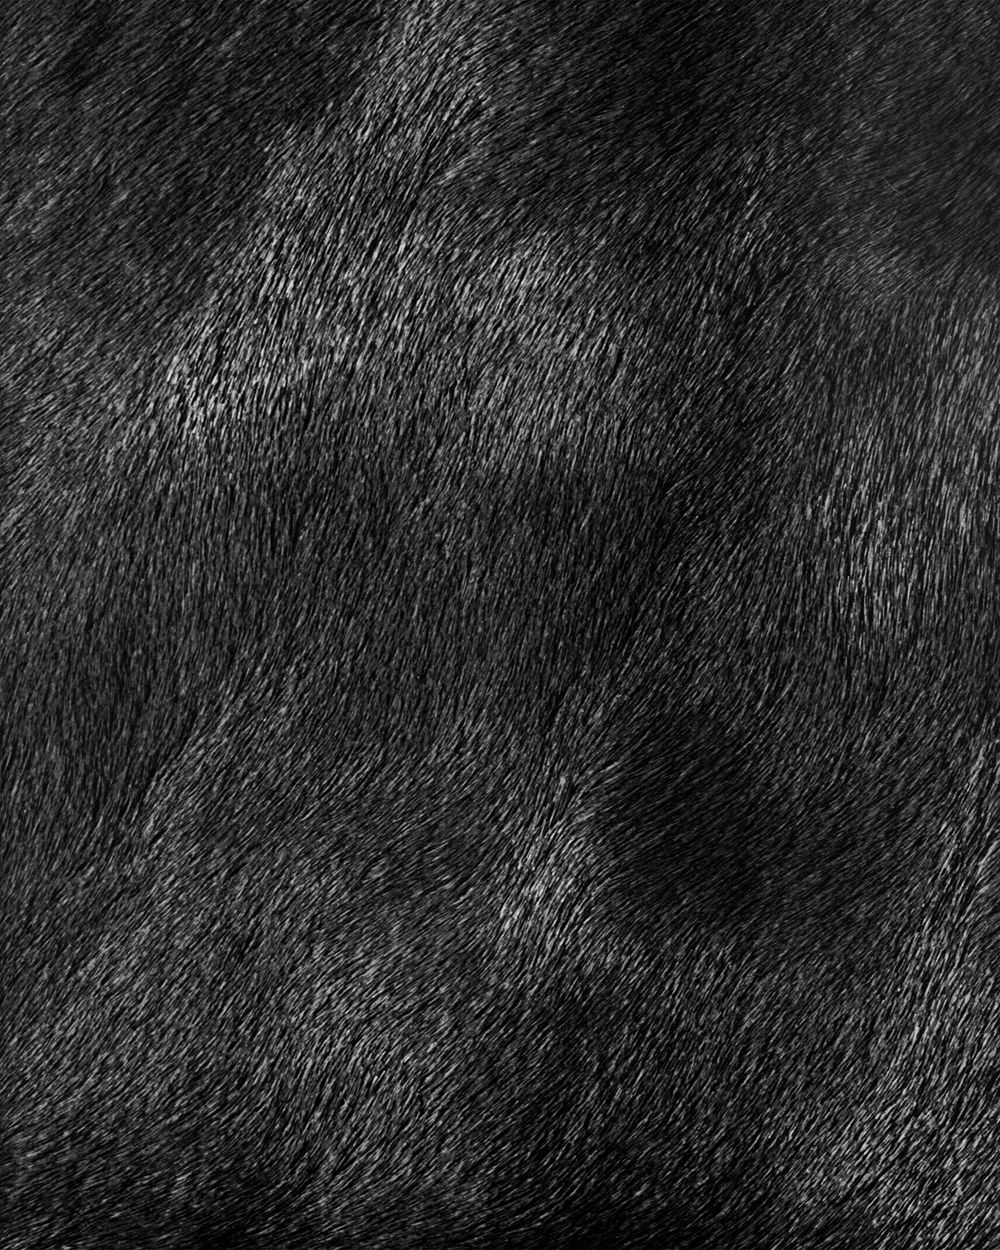 Textures library - free surfaces for 3ds Max, LightWave: textures.forrest.cz/index.php?spgmGal=skinandfur&spgmPic=20